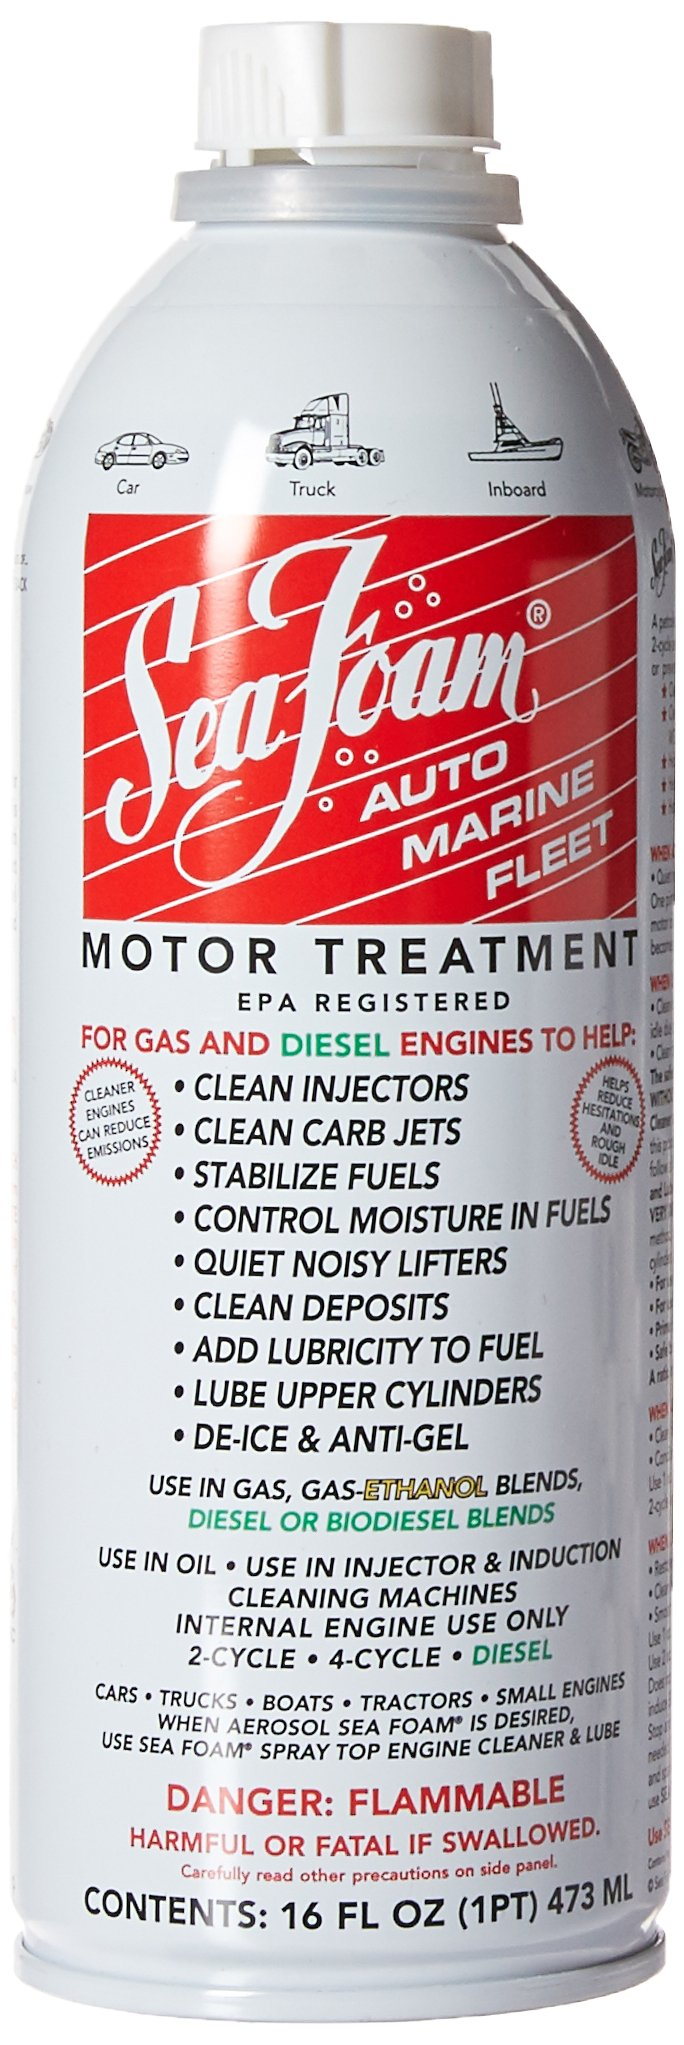 Sea Foam SF-16-24PK Motor Treatment - 16 oz., (Pack of 24)